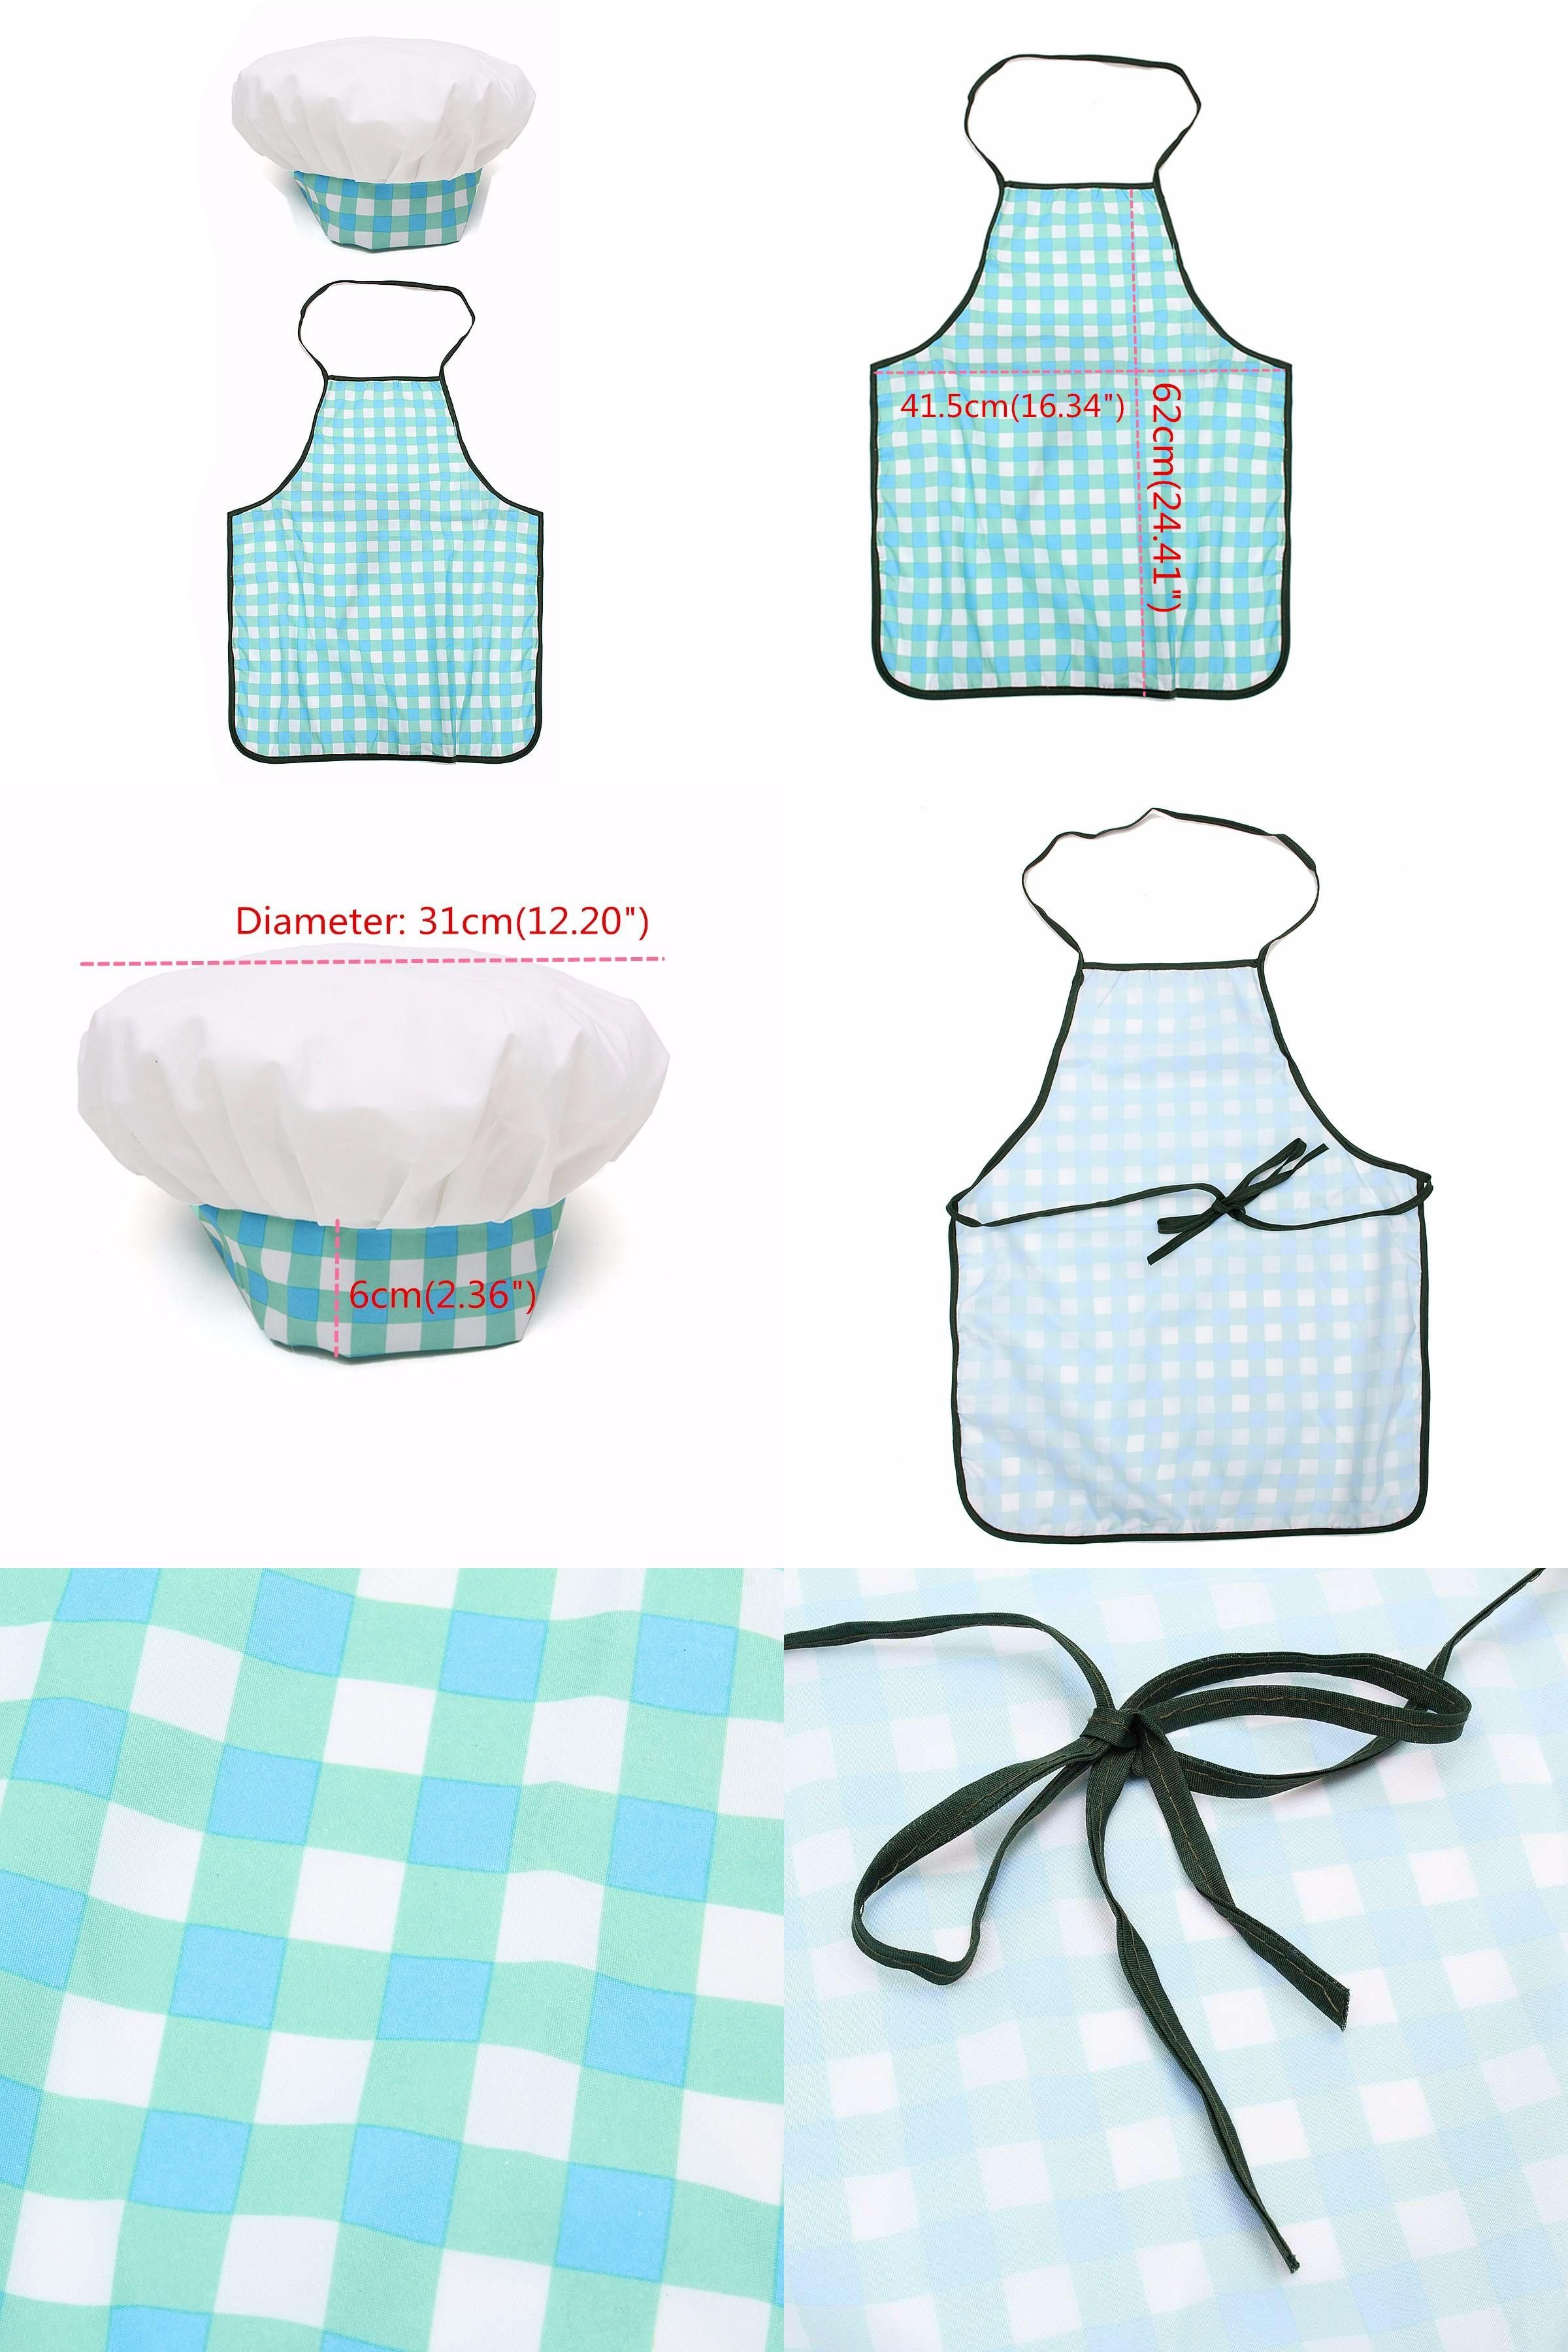 Visit to Buy] 1 Set Children Kids Cook Painting Apron Hat Costume ...